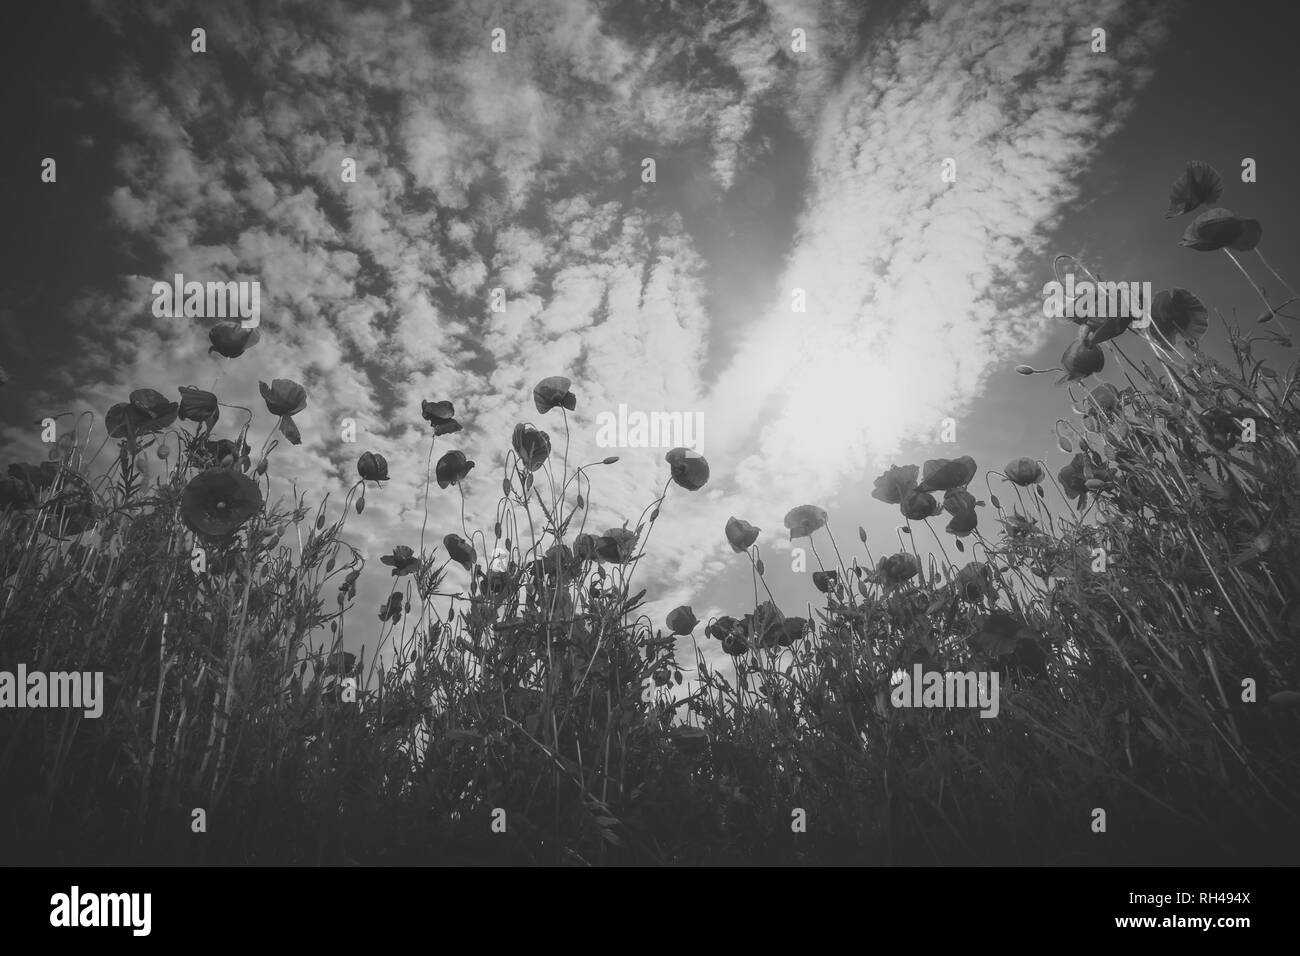 Narcotics Black and White Stock Photos & Images - Alamy